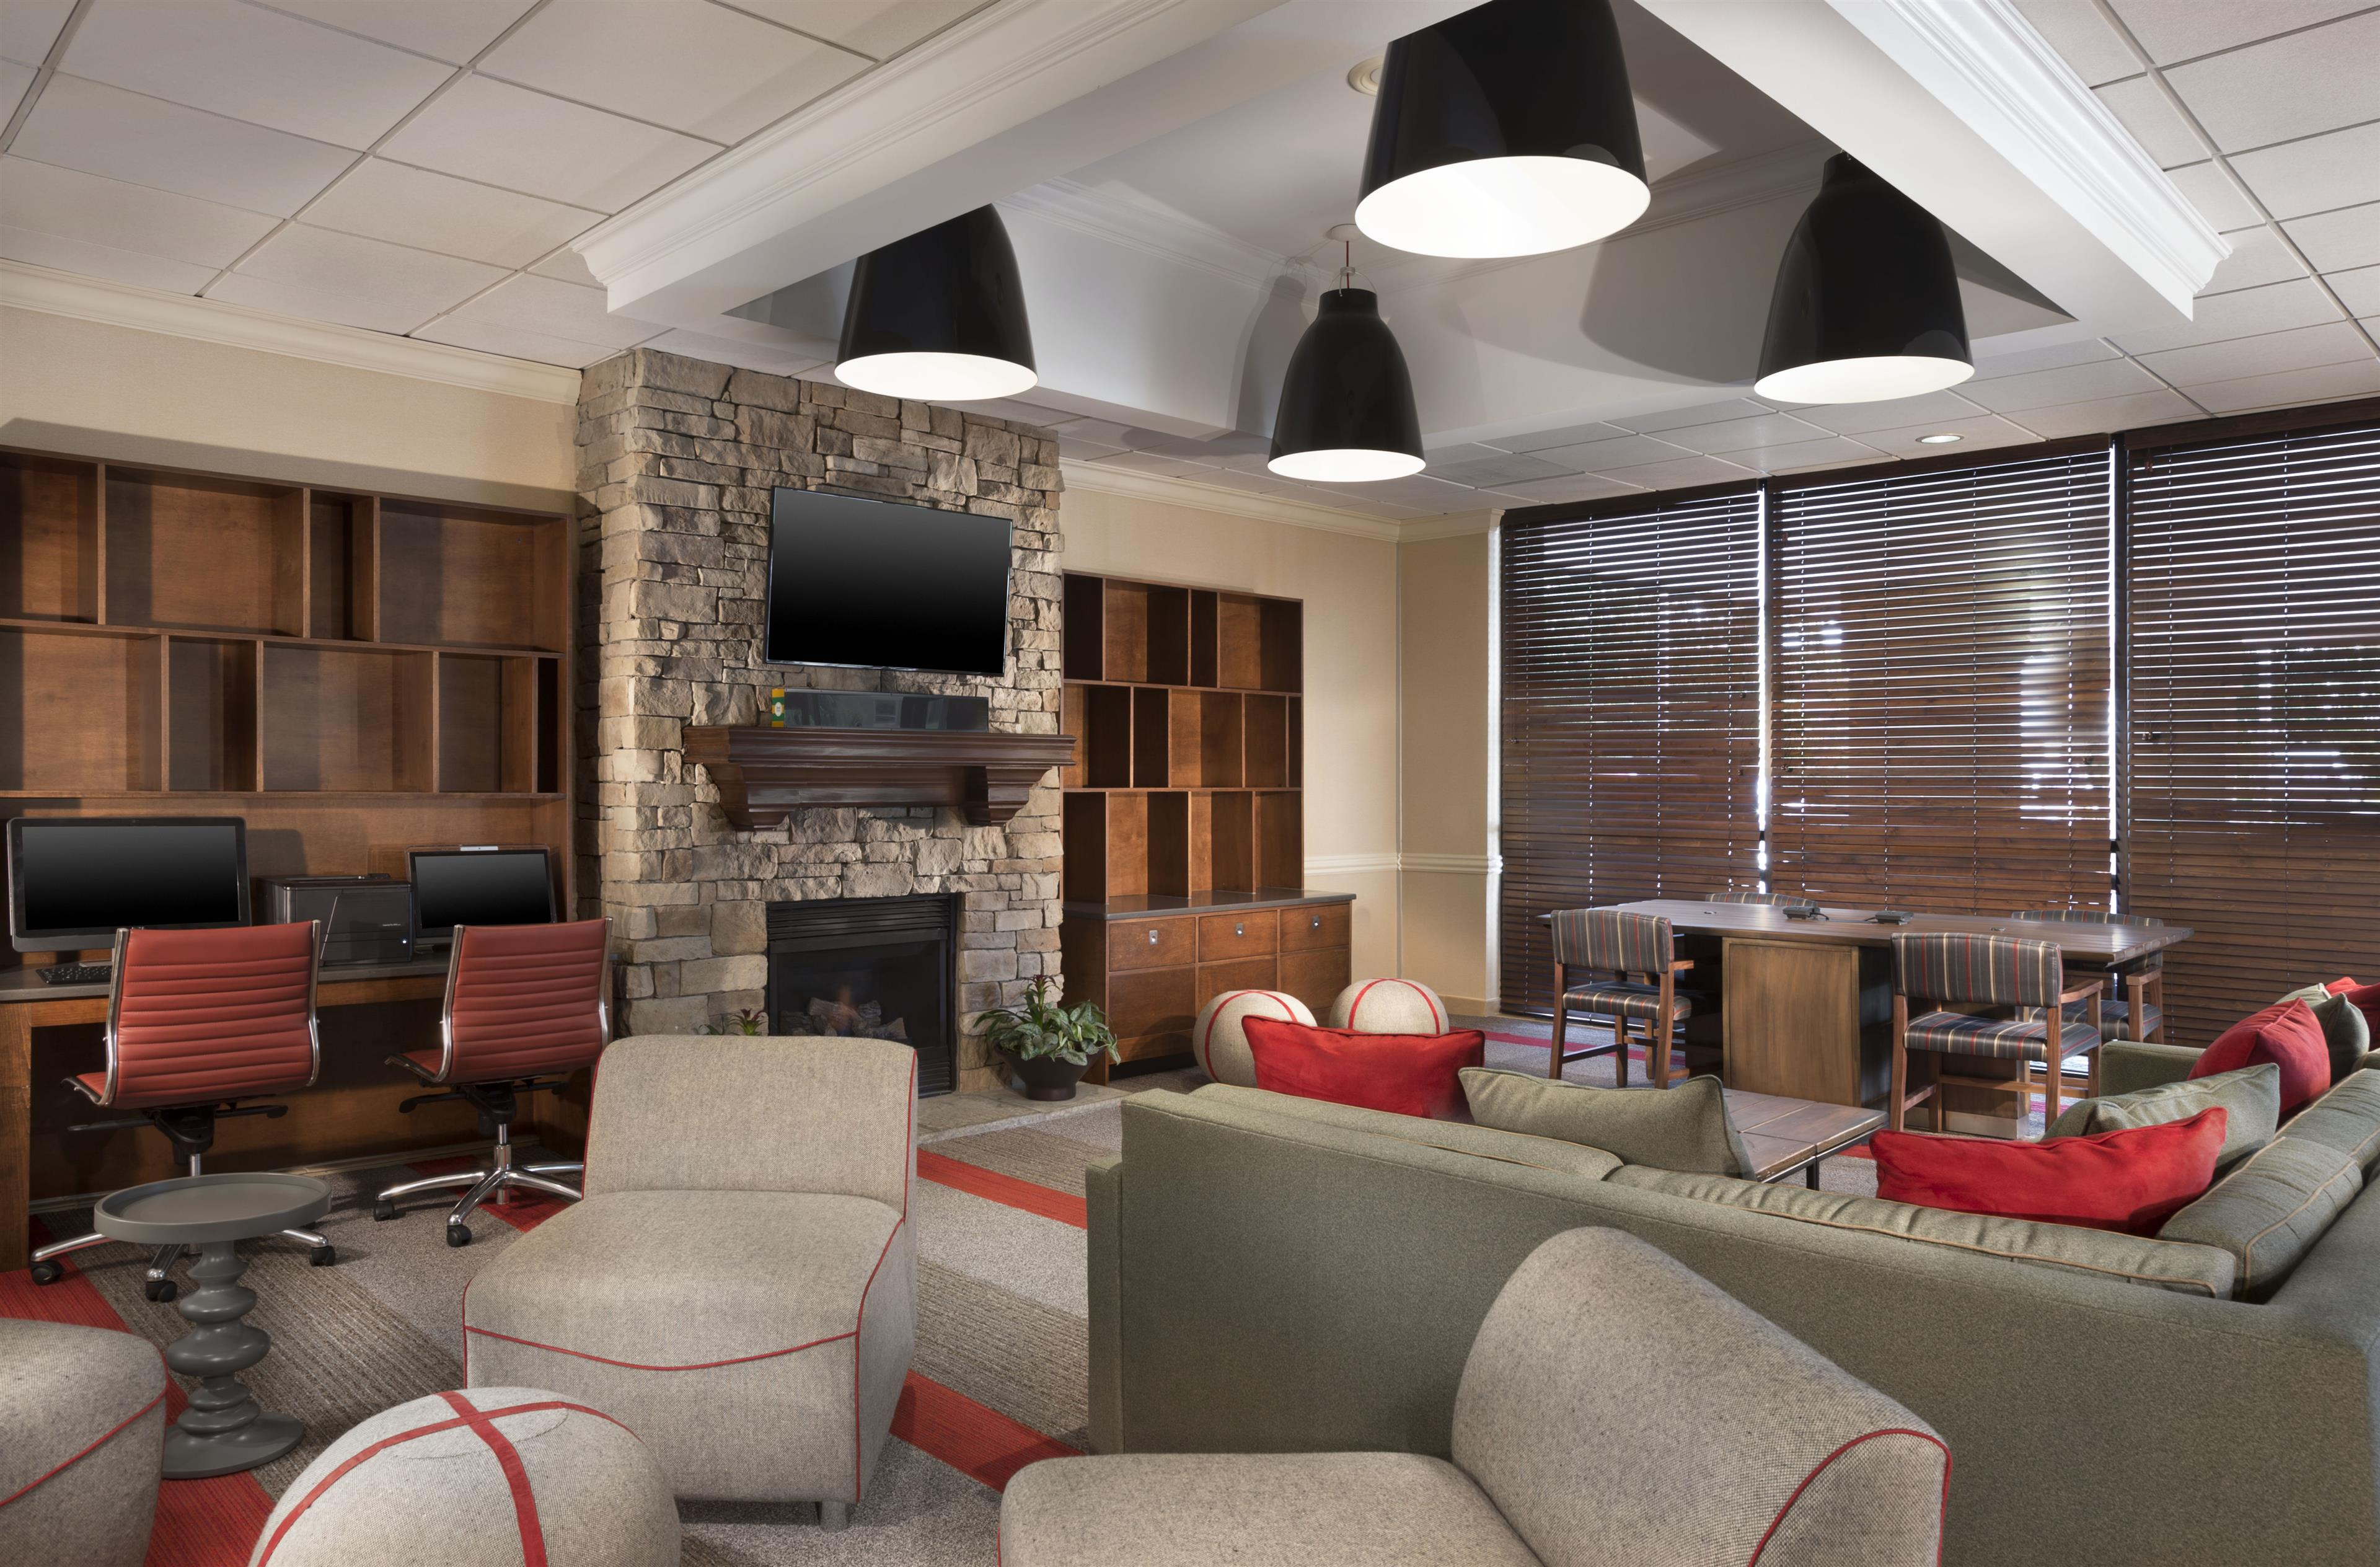 Etrip - Four Points by Sheraton Kansas City AirportOnly trusted providers· Best price guarantee· Over hotels· Search with just 1 clickAmenities: Free Wi-Fi, Parking, Fitness Room / Gym, Bar / Lounge.